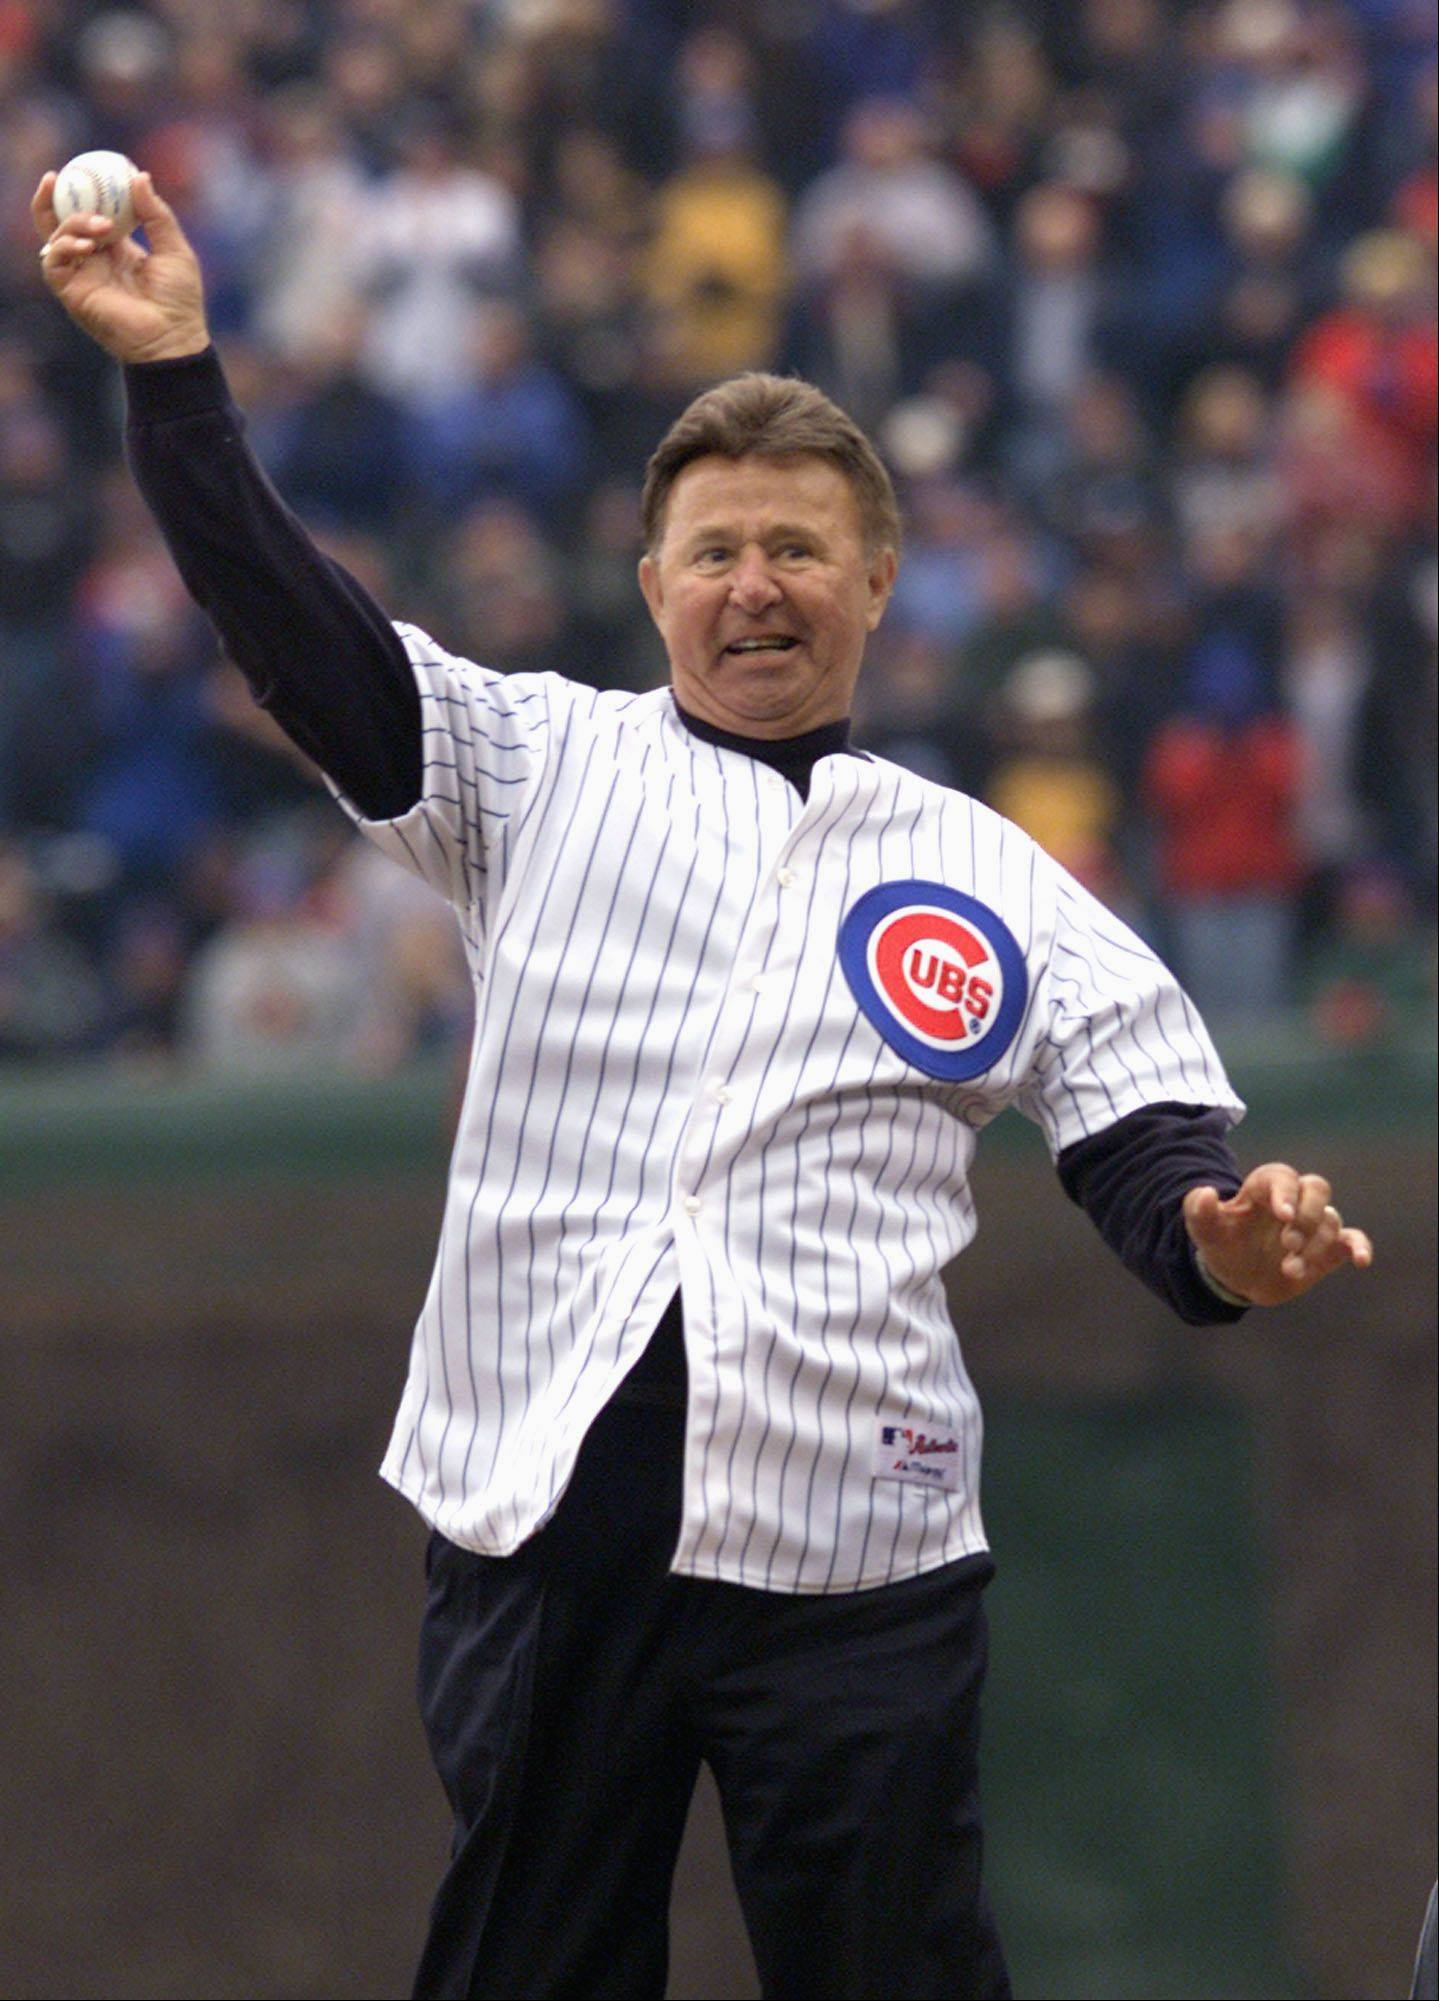 Ron Santo will be inducted into the Hall of Fame on July 22, something the longtime Cubs third baseman always hoped would happen while he was alive to enjoy it.